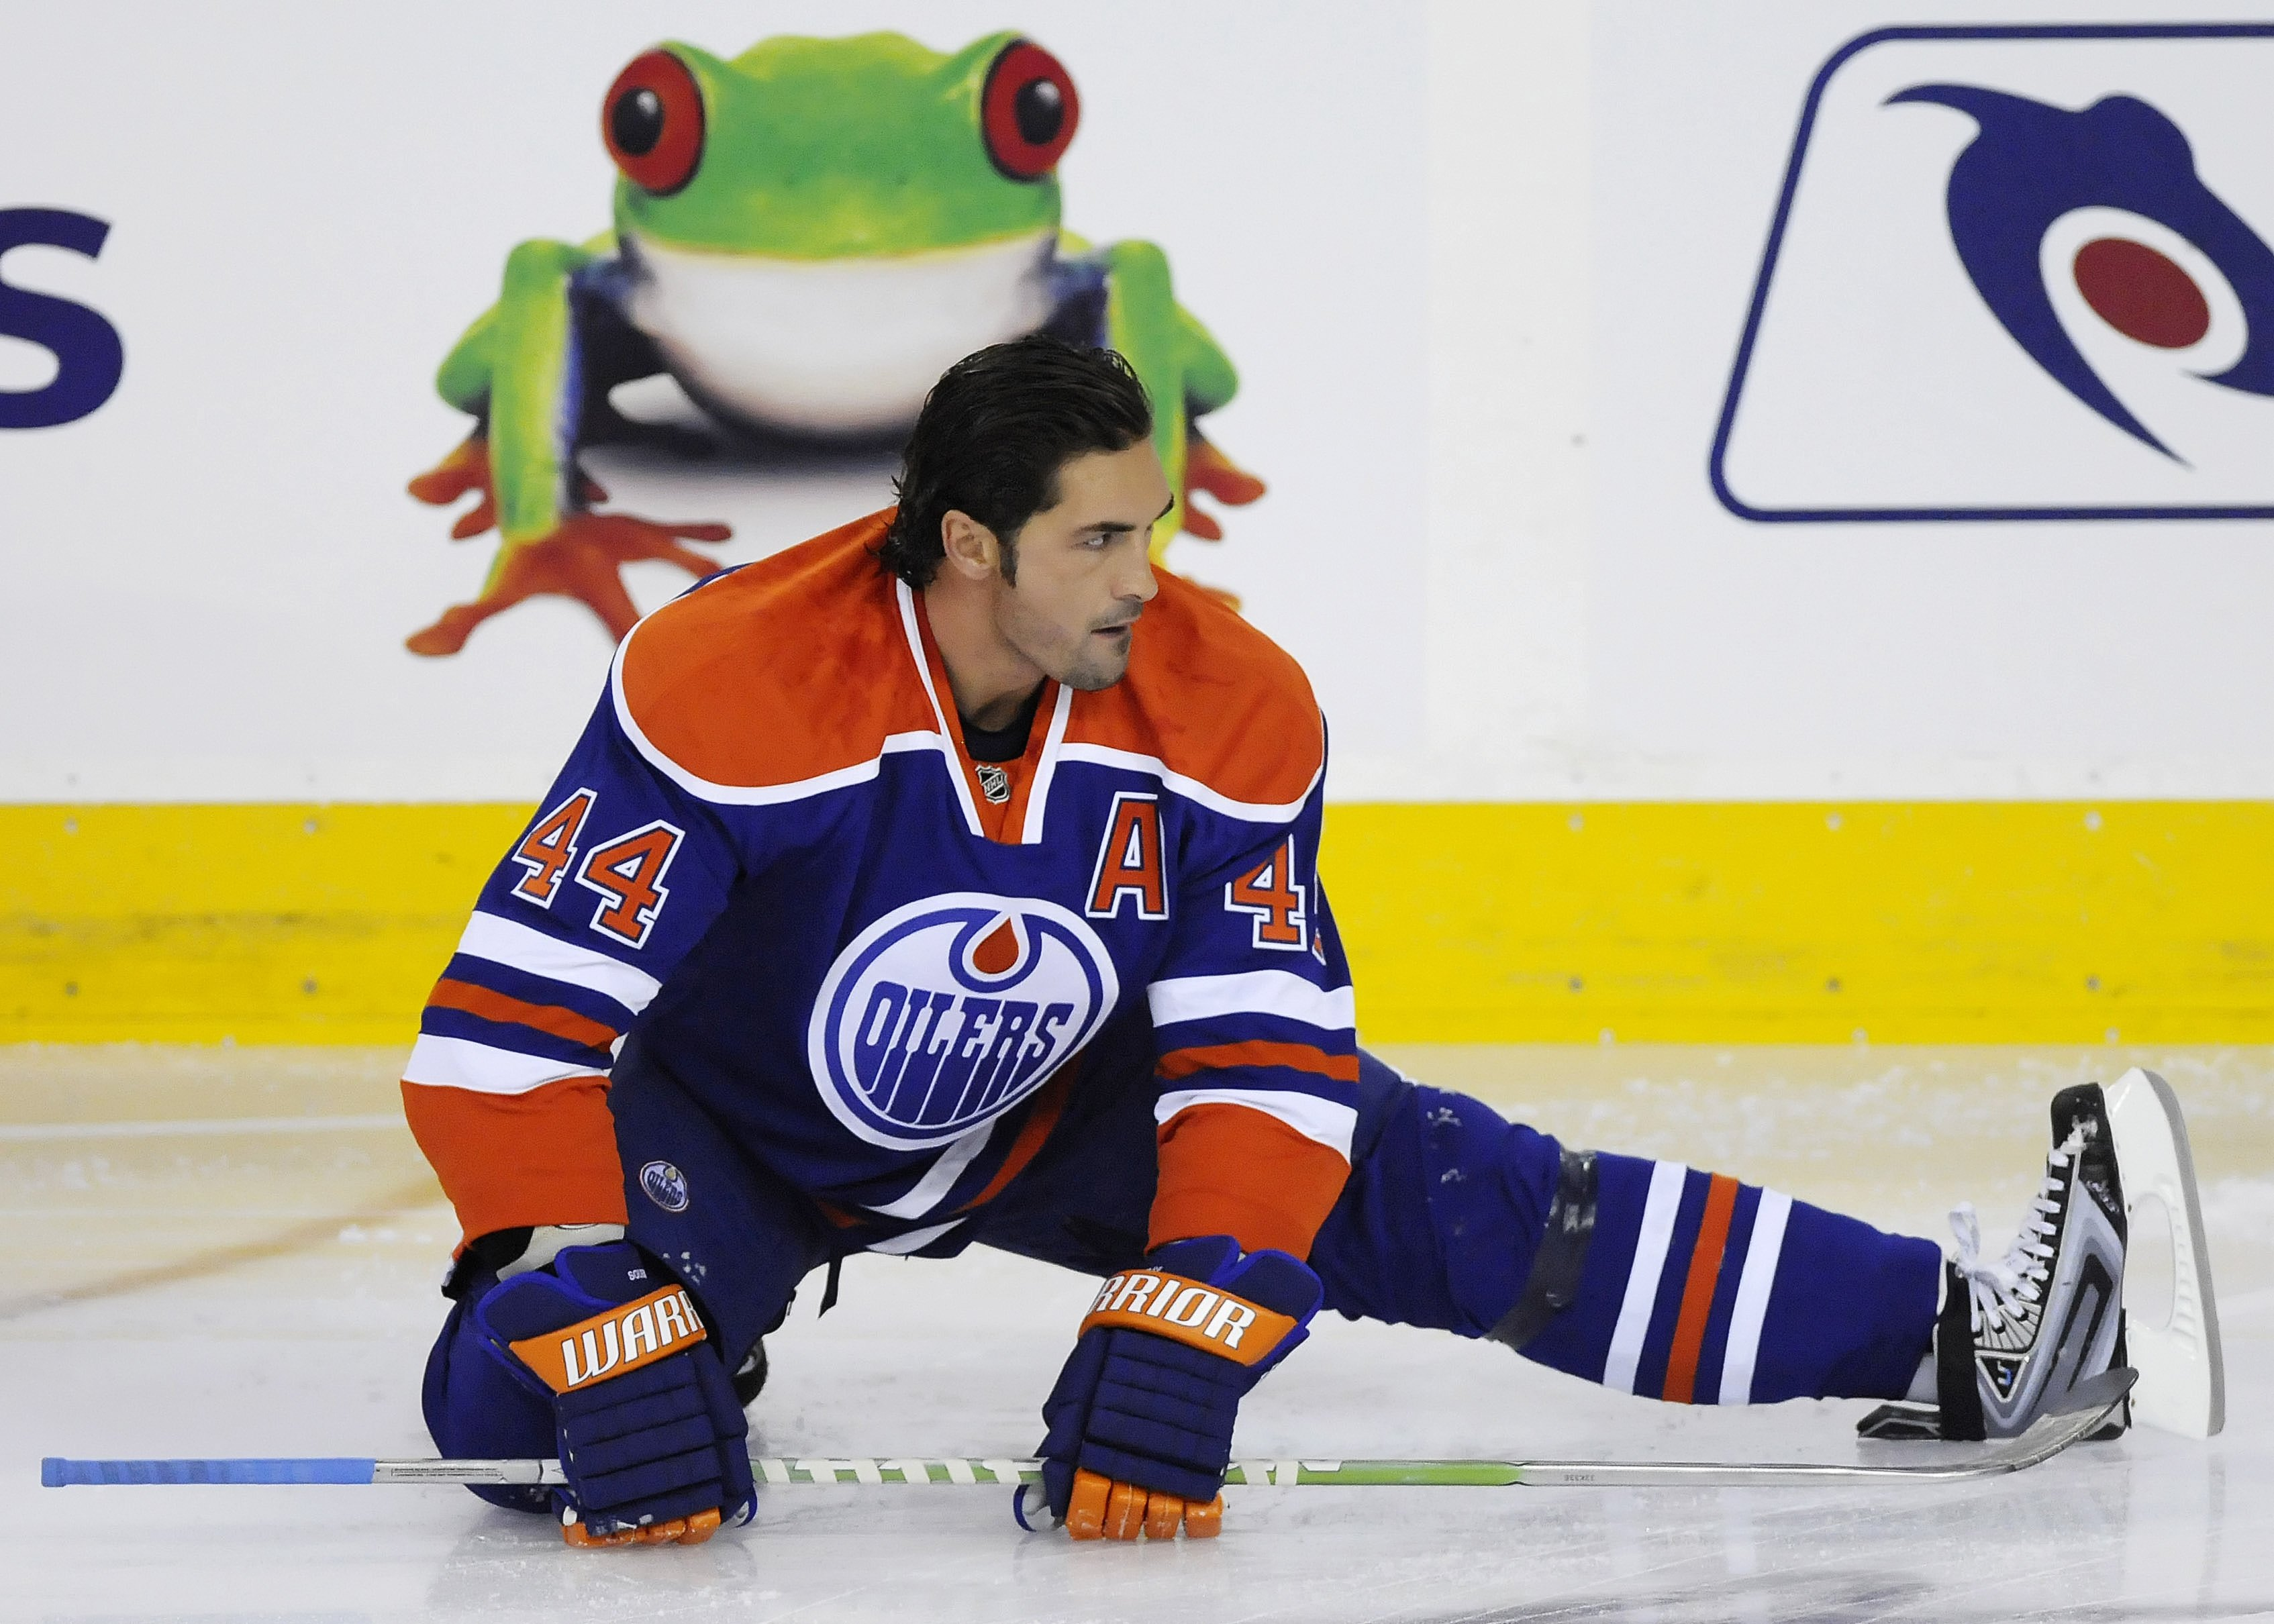 EDMONTON, AB - OCTOBER 3:  Defenseman Sheldon Souray #44 of the Edmonton Oilers warms up in a game between Calgary and Edmonton in the first period during an NHL game on October 3, 2009 at Rexall Arena in Edmonton, Canada. The Calgary Flames defeated the